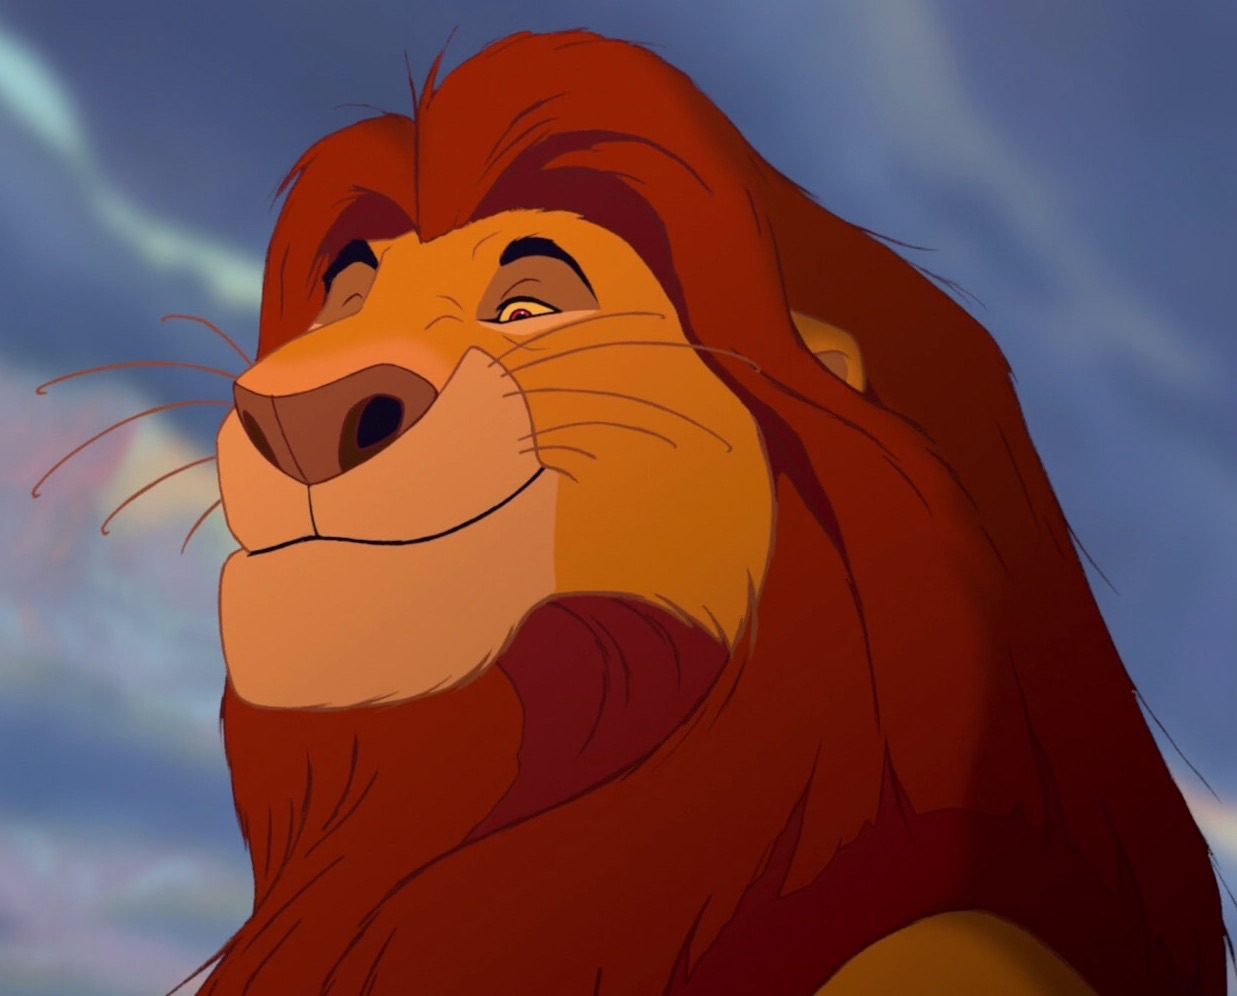 Lion King Scar And Mufasa Mufasa | Disney Wiki |...